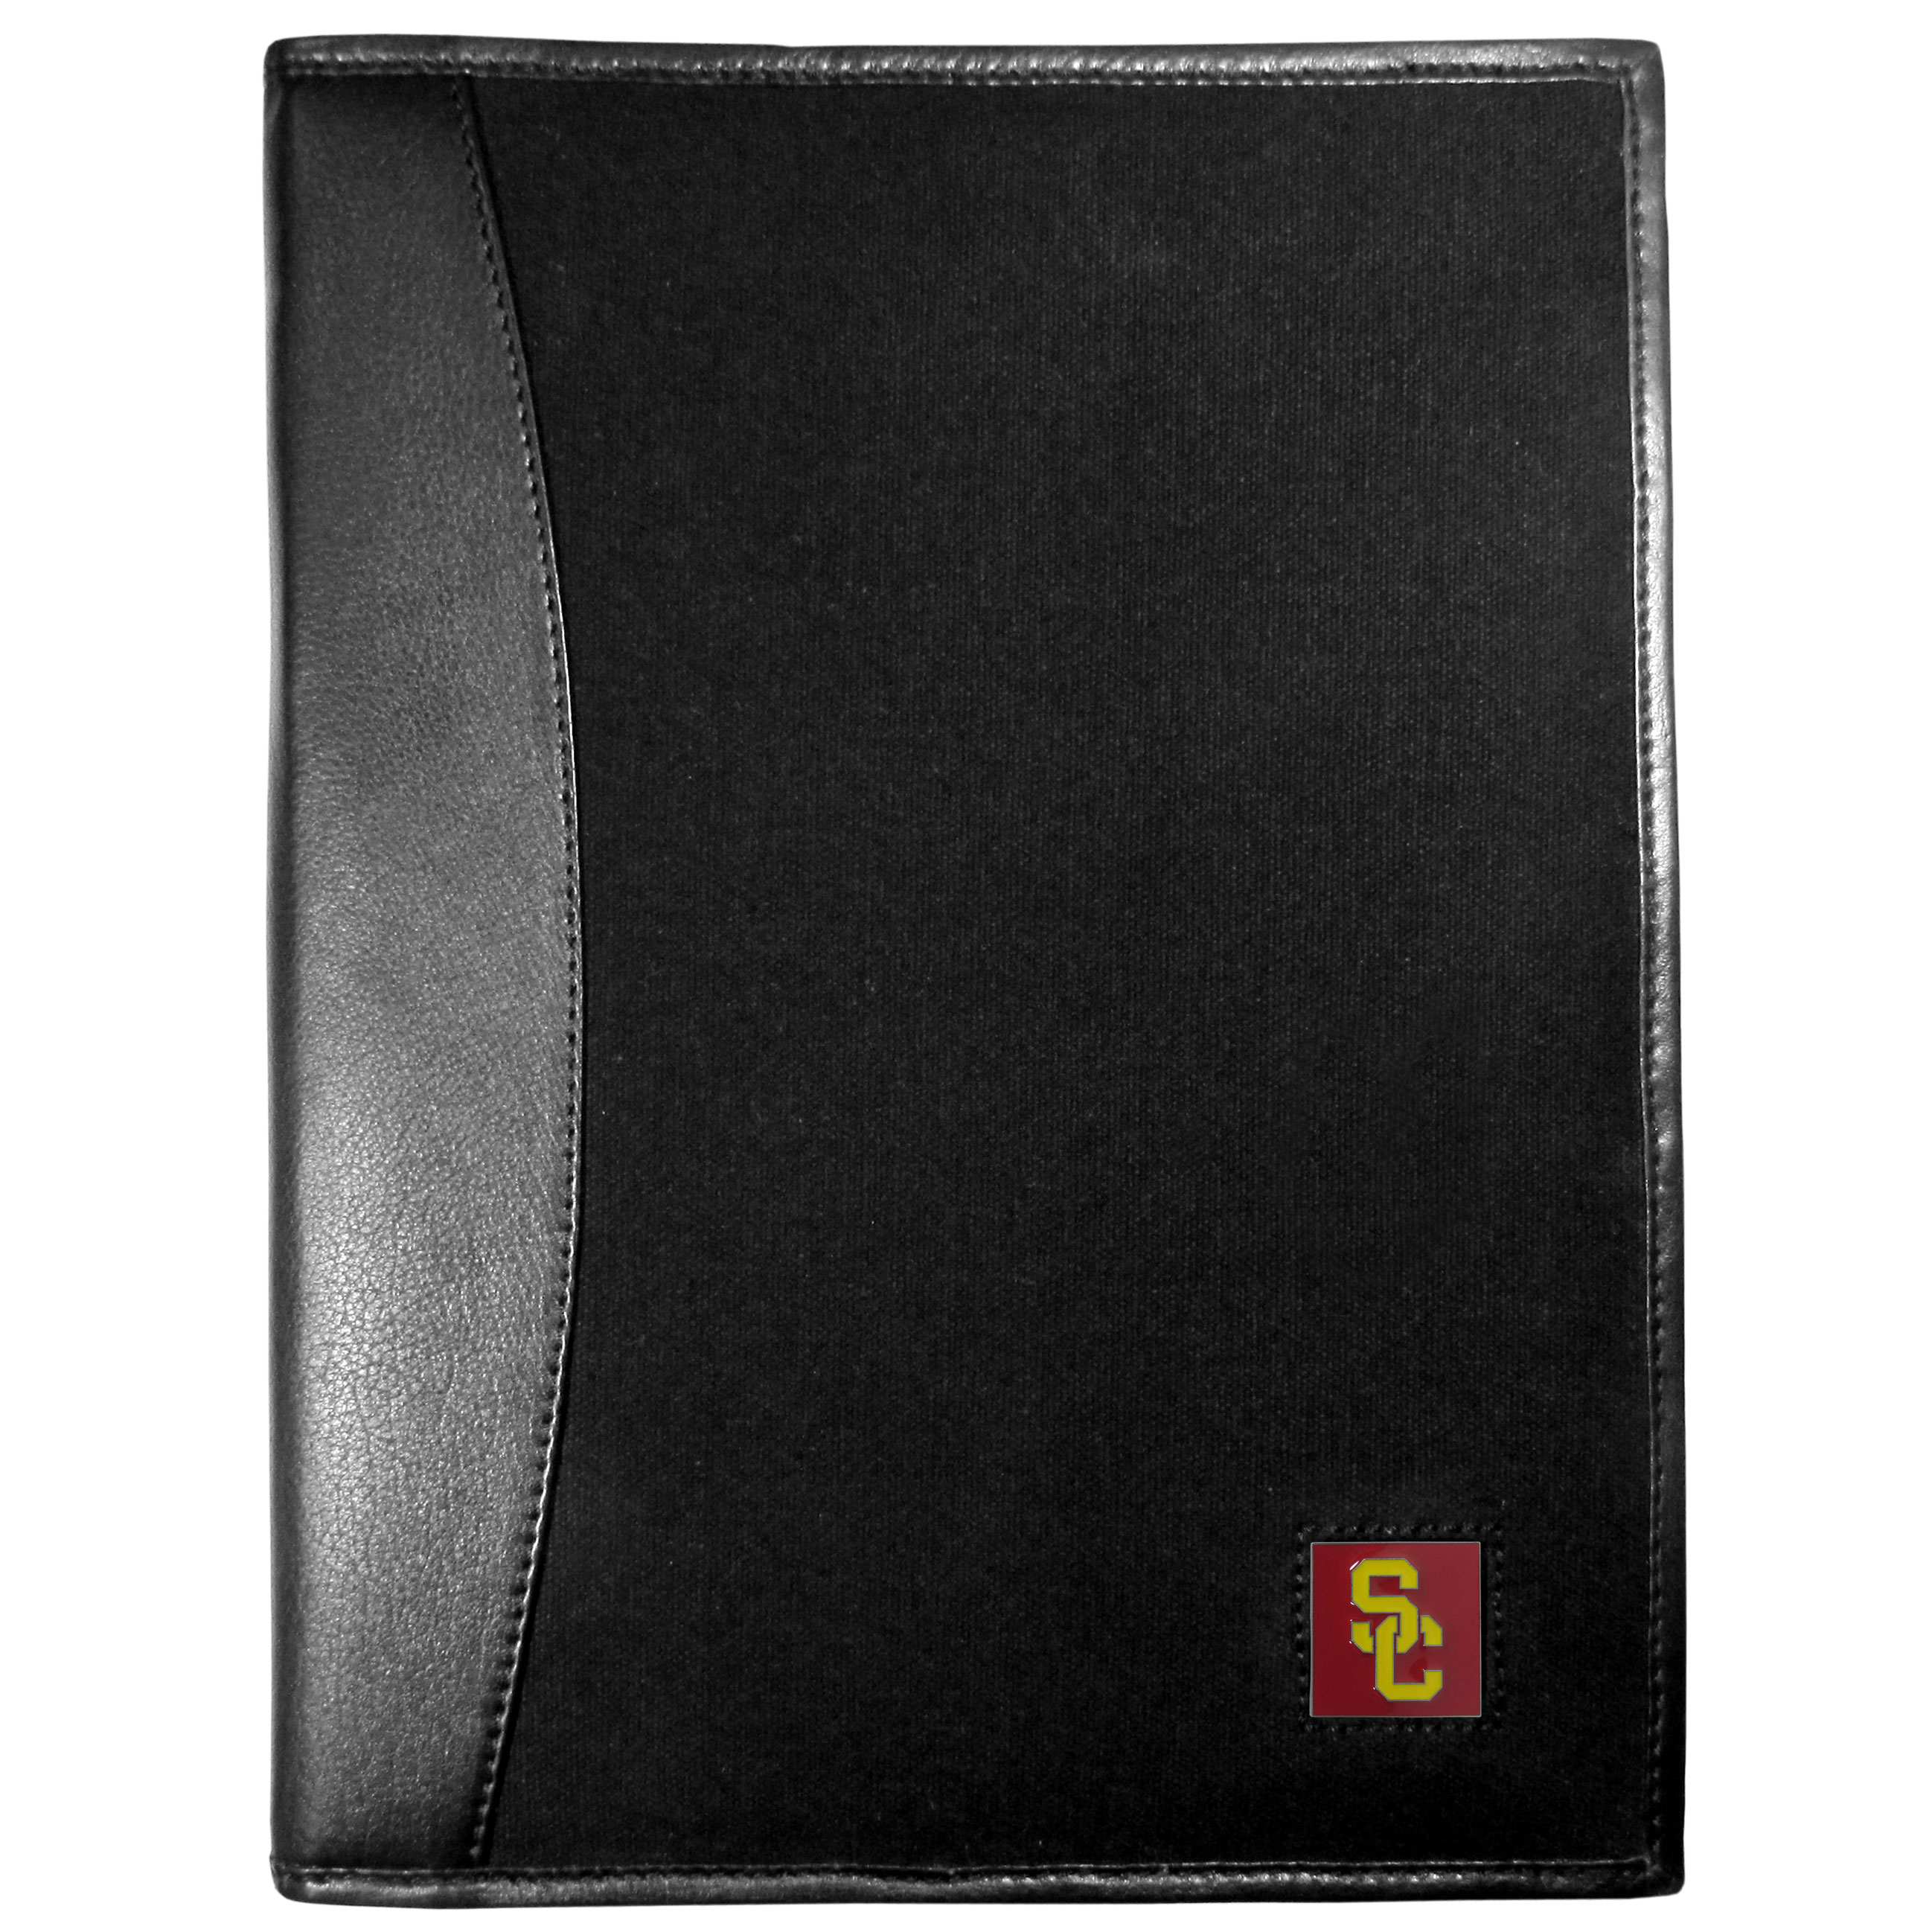 USC Trojans Leather and Canvas Padfolio - Our leather and canvas padfolio perfectly blends form and function. The attractive portfolio is bound in fine grain leather with an attractive canvas finish and the interior is a soft nylon. This high quality business accessory also features a fully cast metal USC Trojans emblem that is subtly set in the corner of the organizer. It is packed with features like 6 card slots for badges, business cards, hotel keys or credit cards and ID with a large pocket for loose papers and a writing tablet slot making it a must-have for the professional on the go.